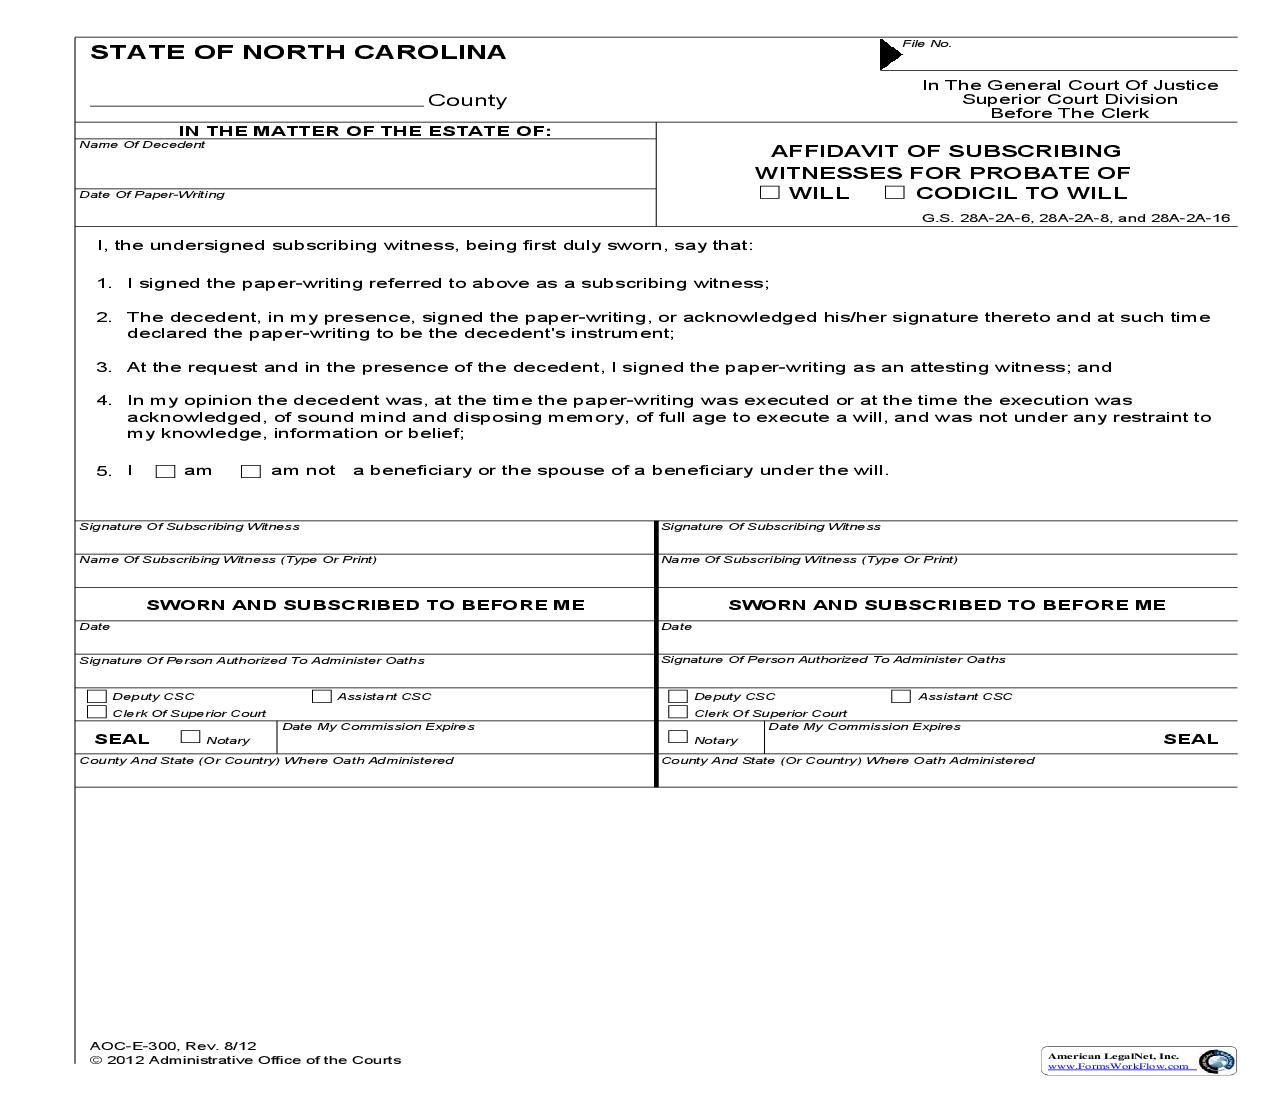 Affidavit Of Subscribing Witnesses For Probate OF Will Codicil To Will {E-300} | Pdf Fpdf Doc Docx | North Carolina